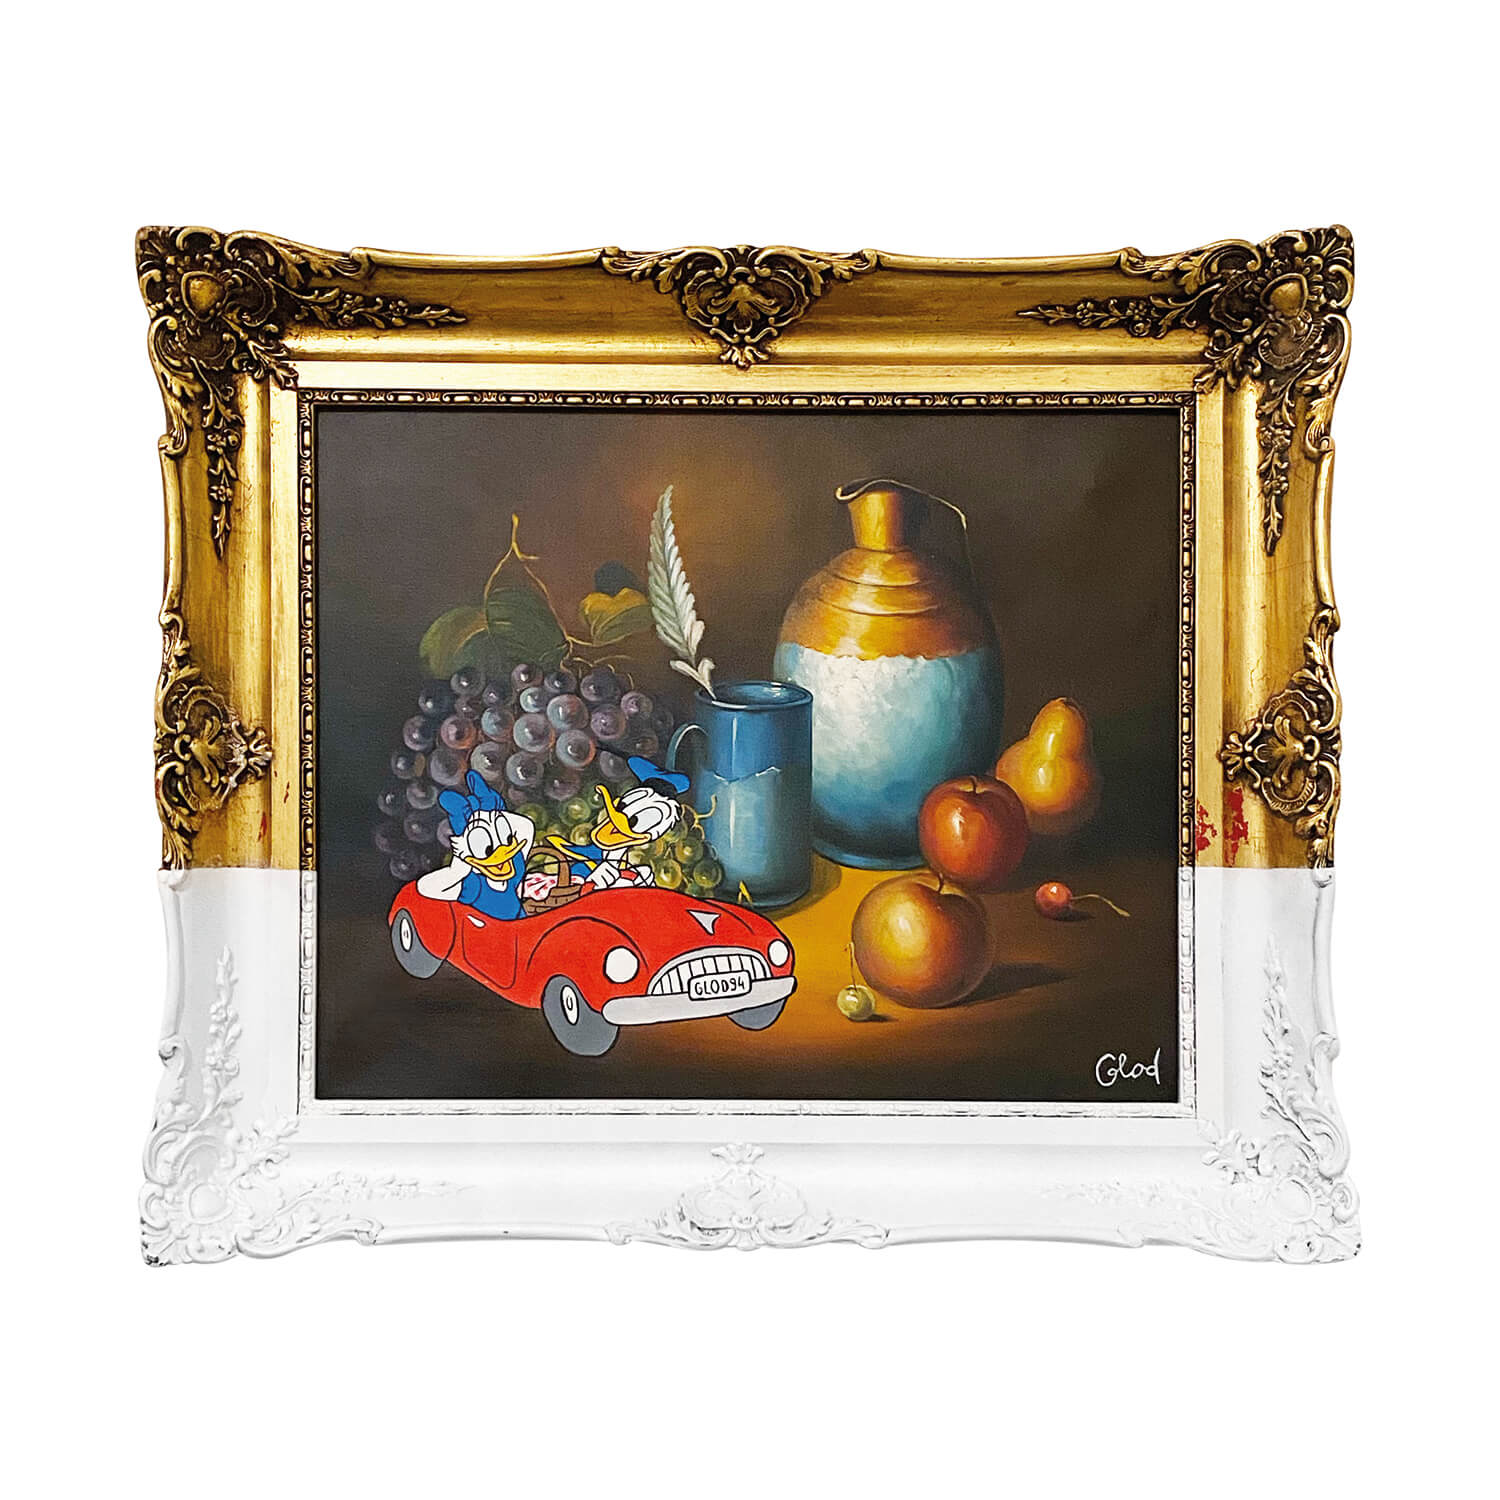 Glod-Art-Picknick-Modern-Antique-Artwork-2020